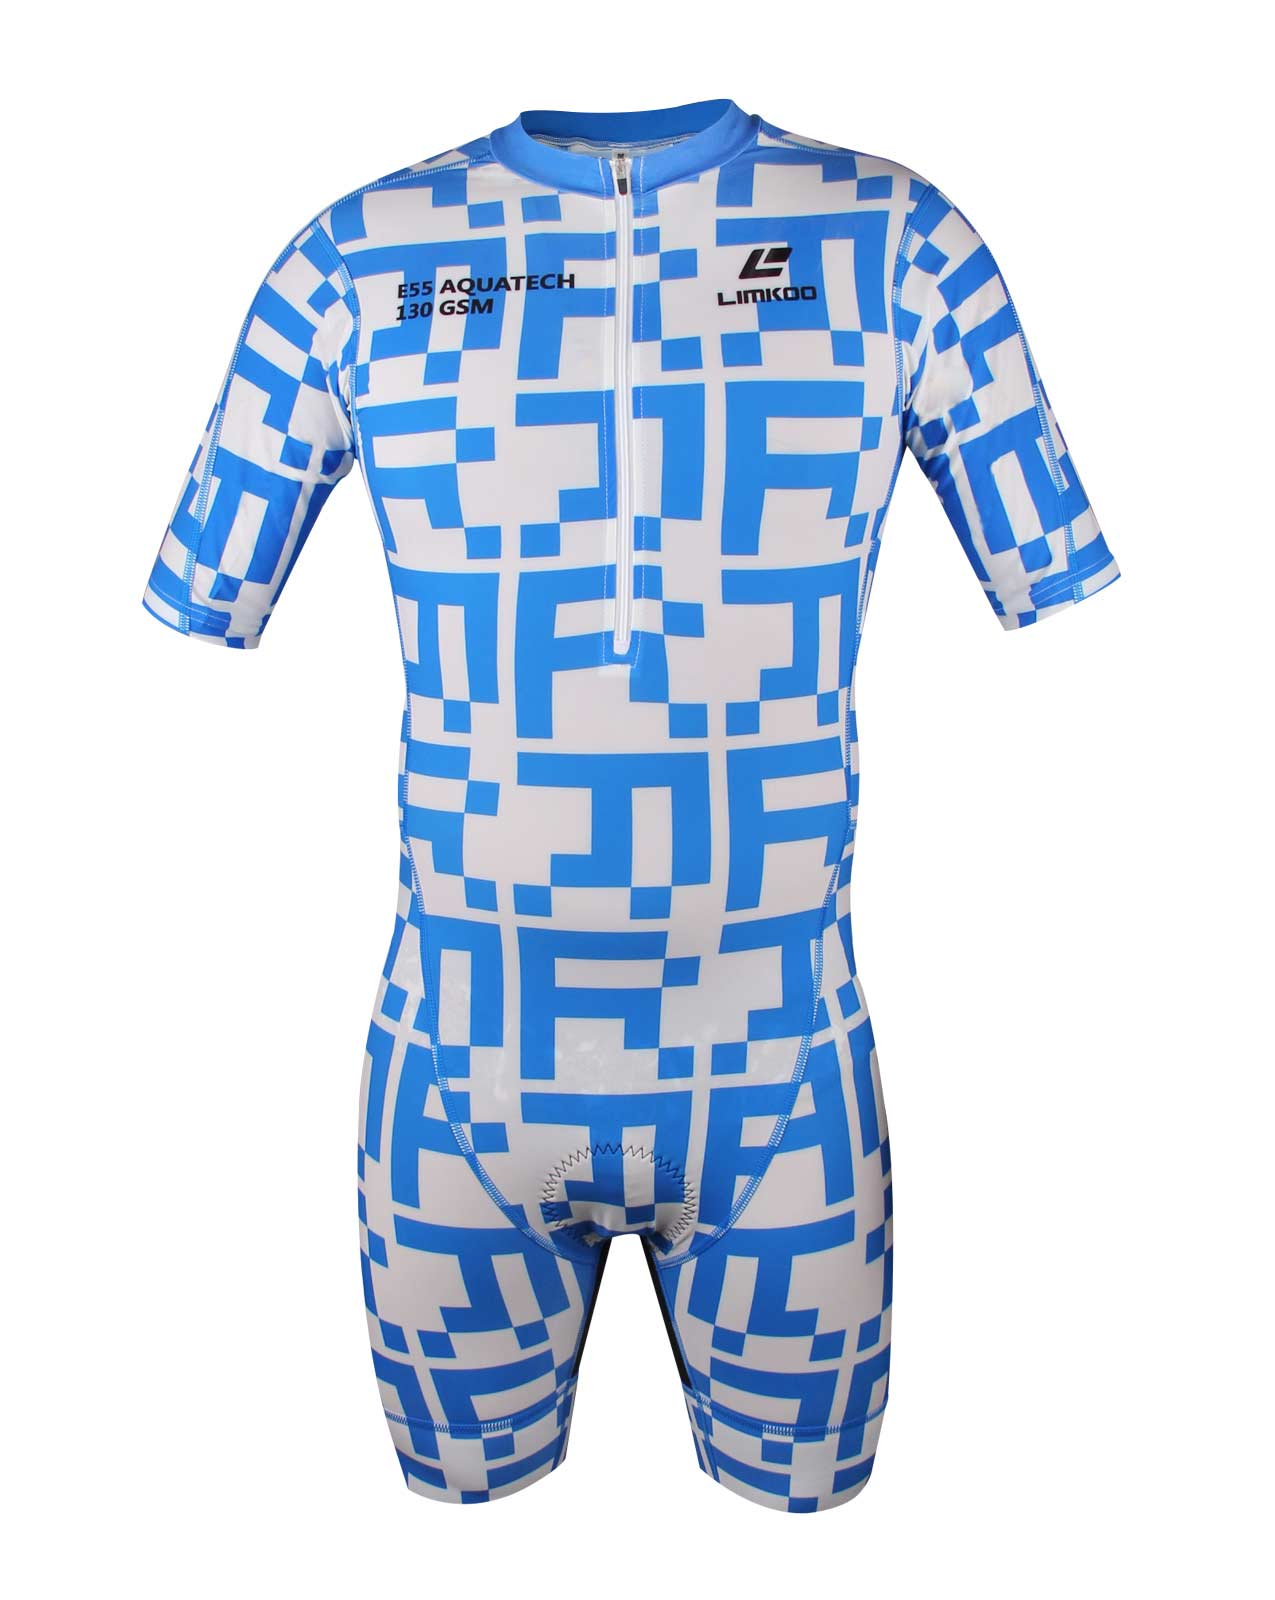 French AQUATECH Short Sleeve Tri Suit